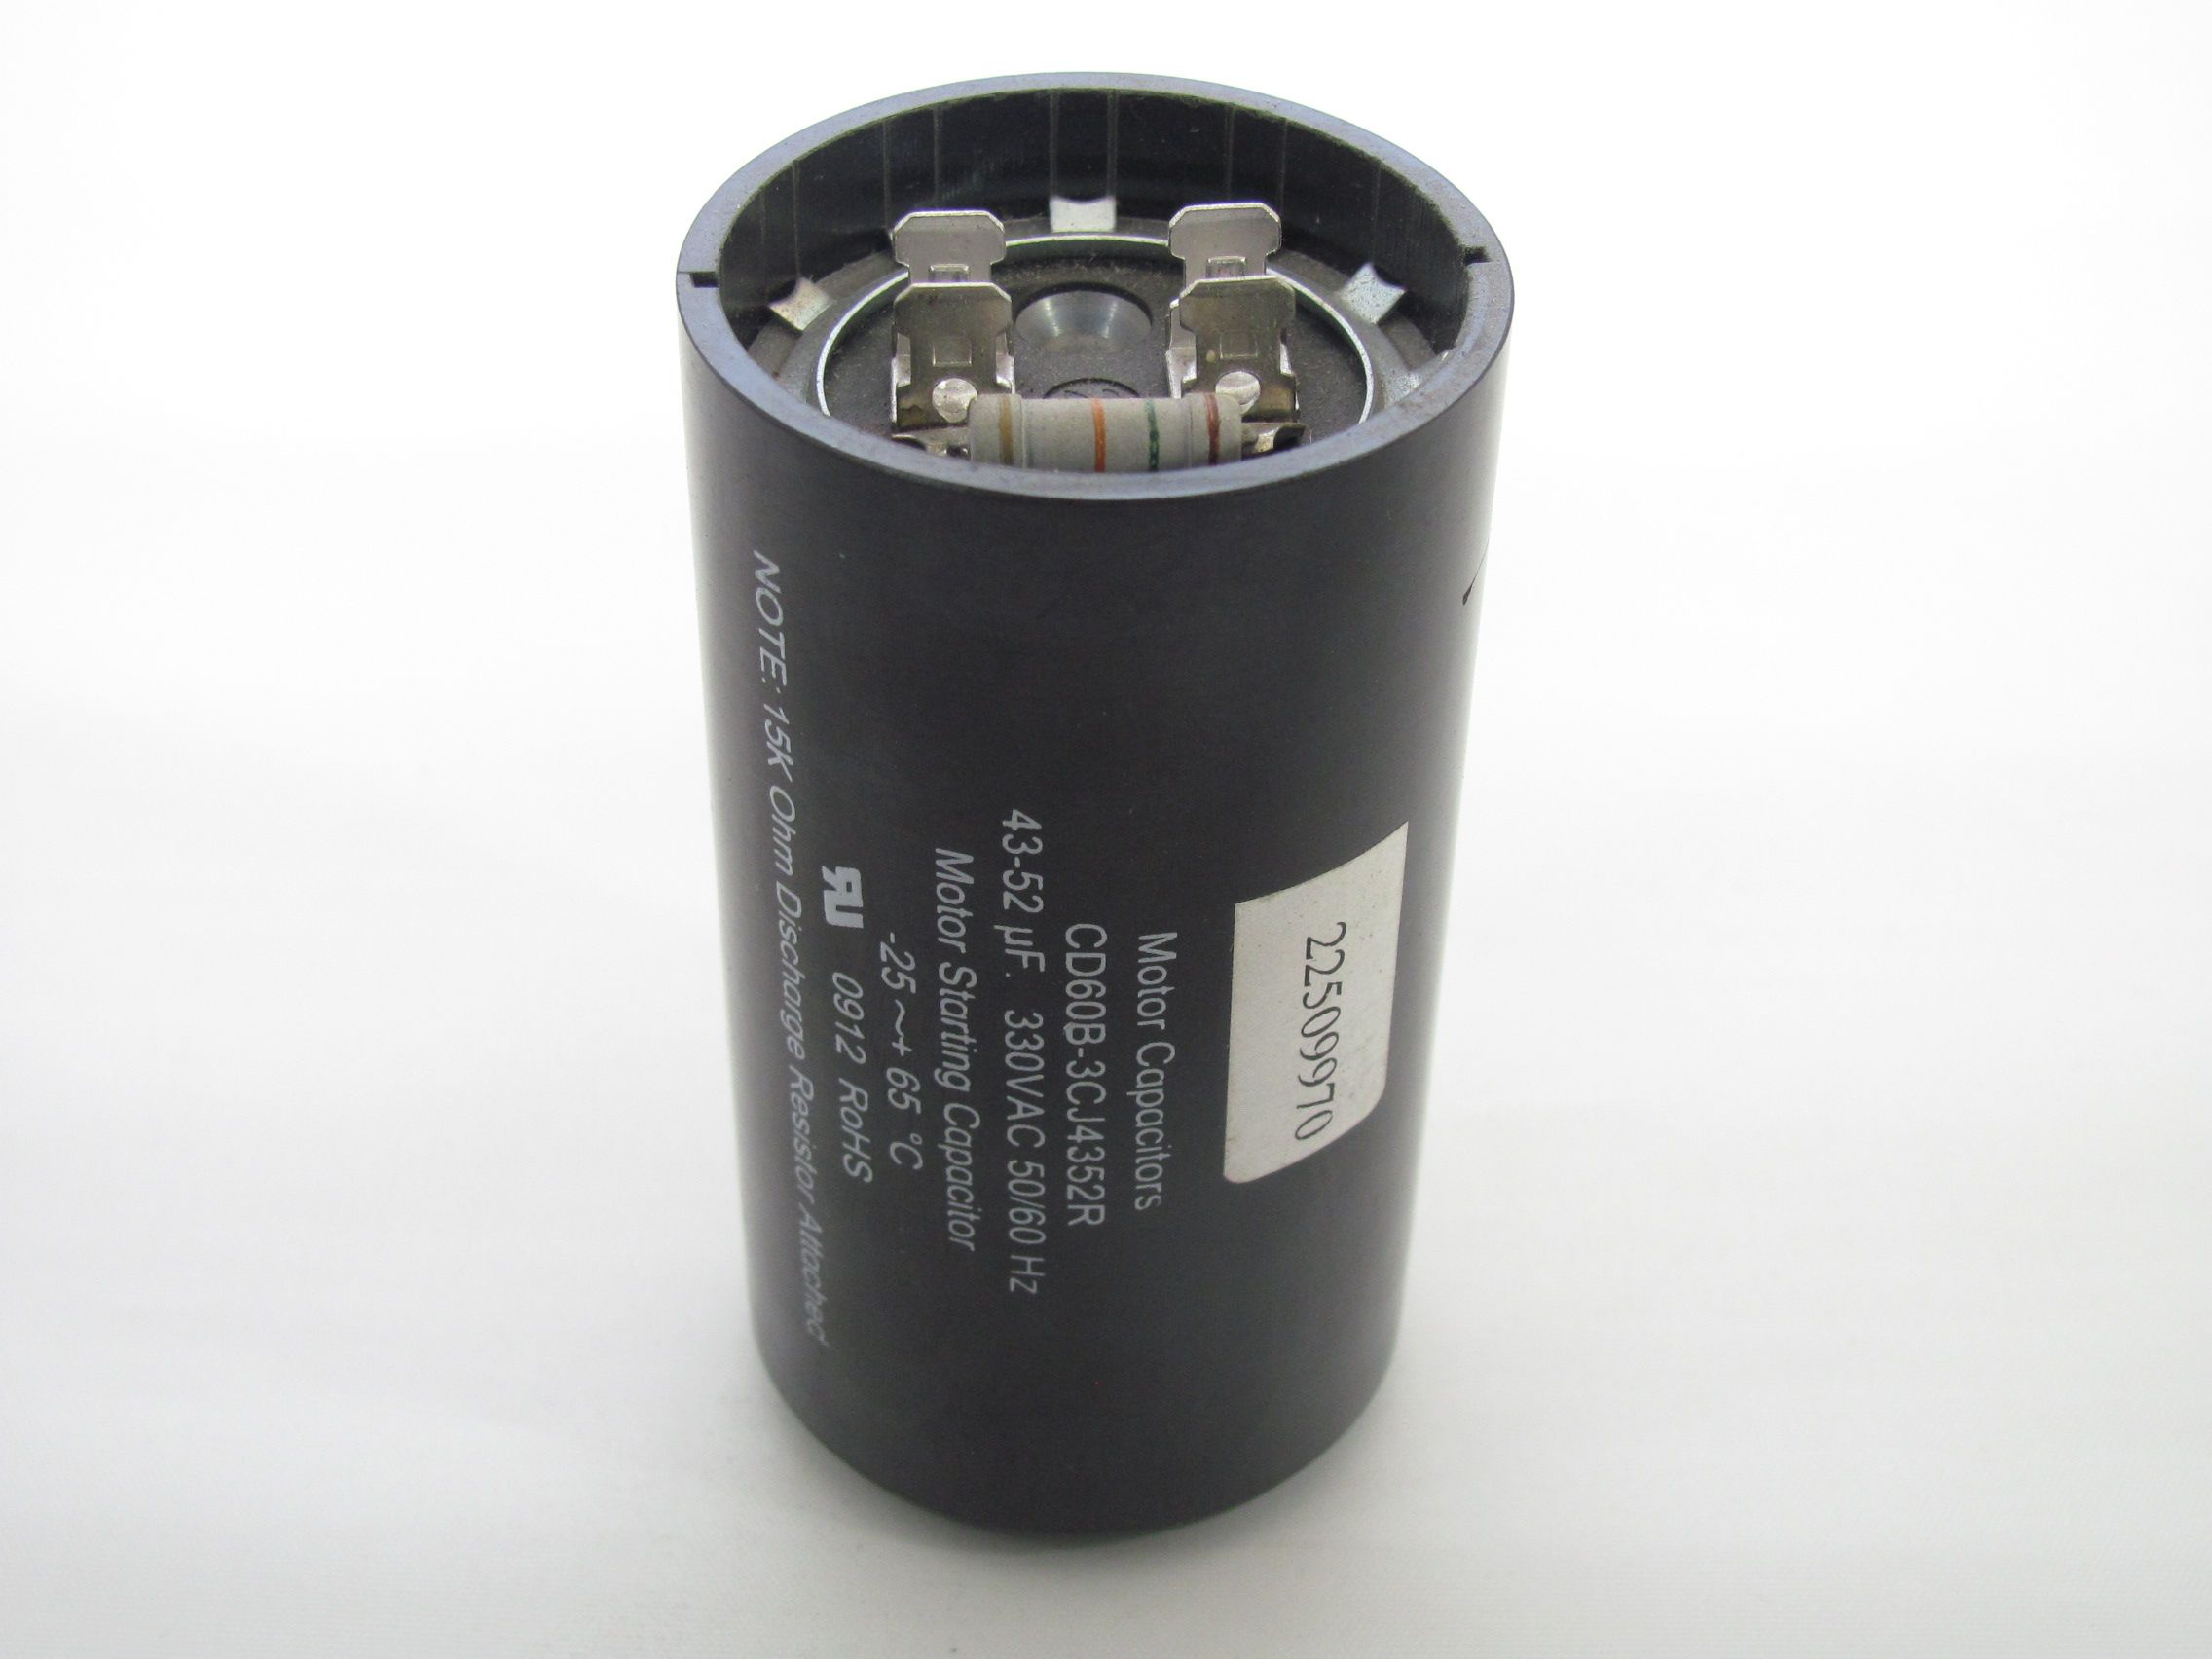 Cd60b 3cj4352r 43 52 Uf 330 Vac Capacitor 22509970